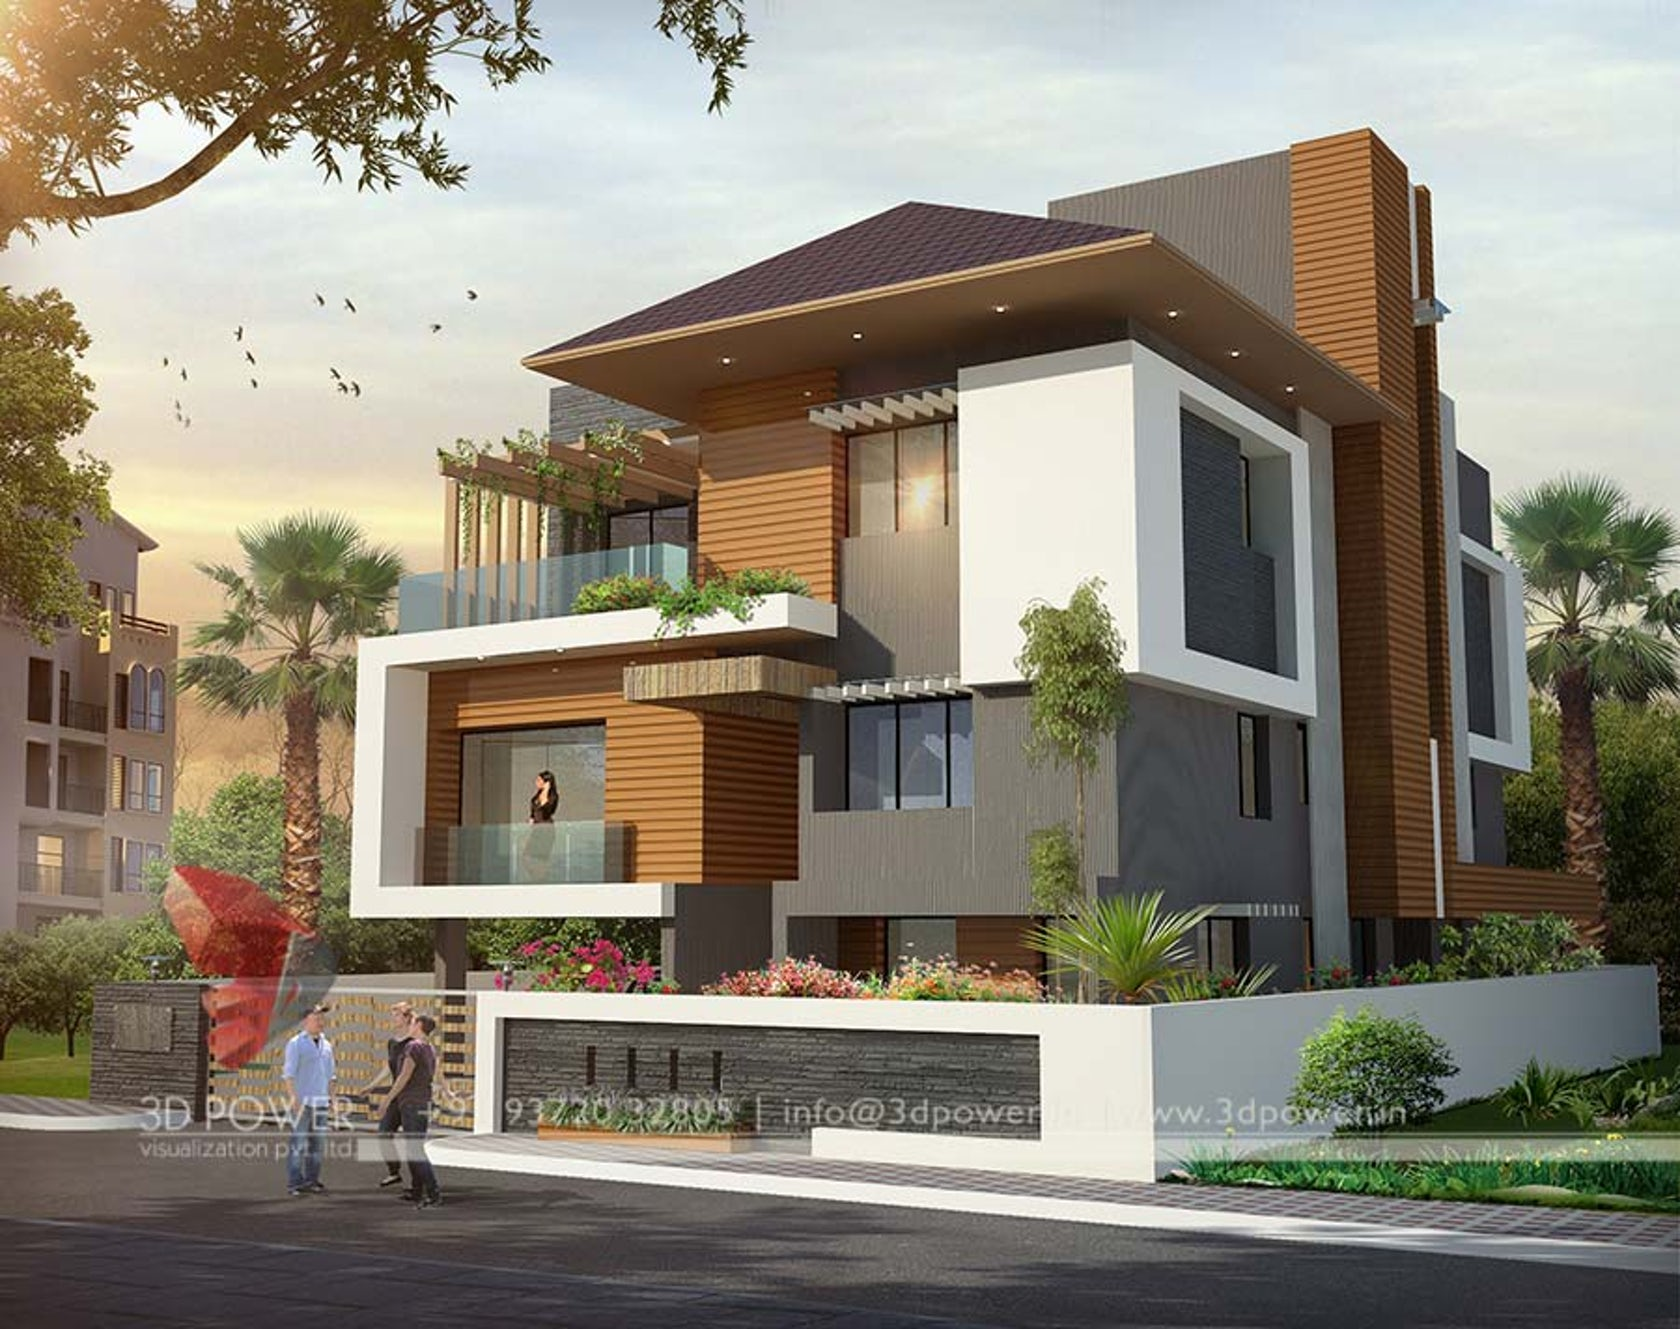 3D Modern bungalow exterior day & night rendering & elevation design by 3D  Power on Architizer